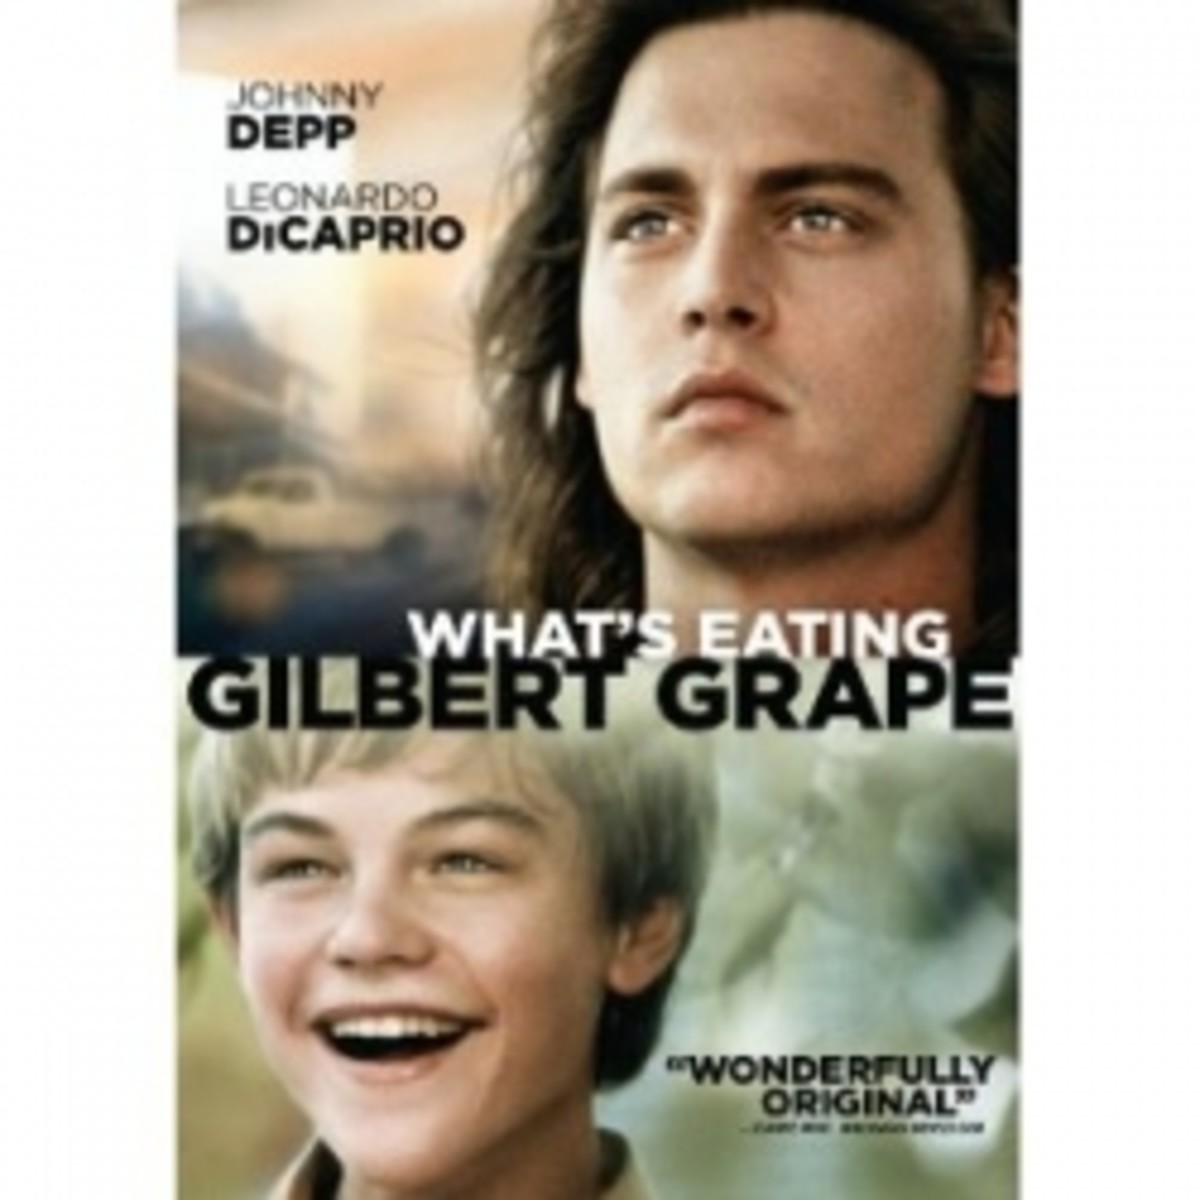 What's Eating Gilbert Grape movie image Depp Dicaprio